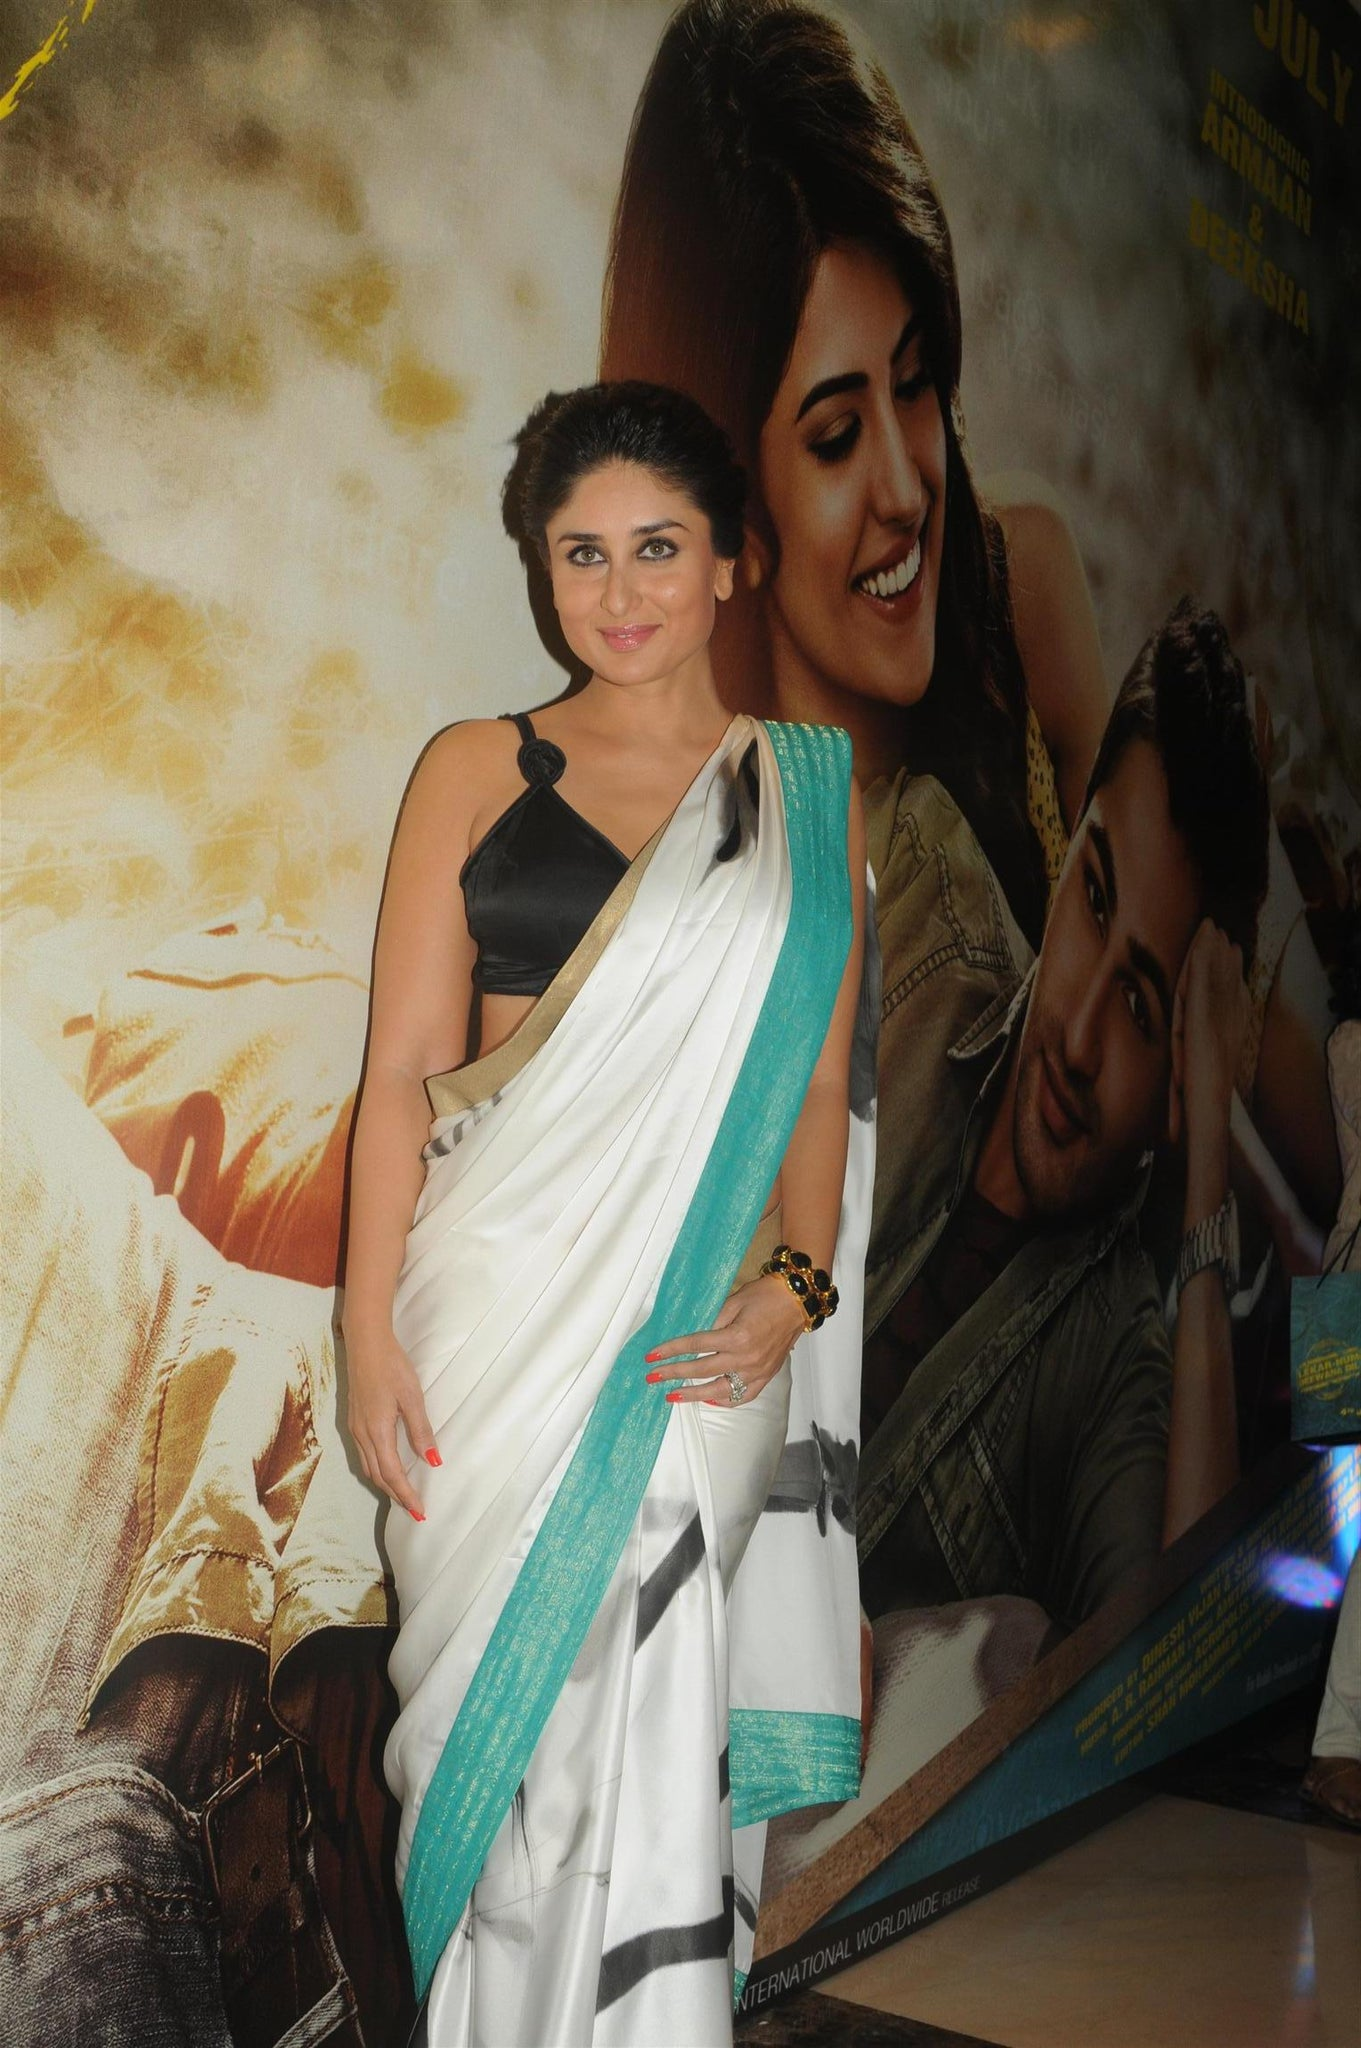 69bc74d2be Kareena Kapoor looks exquisite in a saree. Kareena Kapoor Khan is one of  the most talked about fashionista in Bollywood who has been ruling the  fashion ...